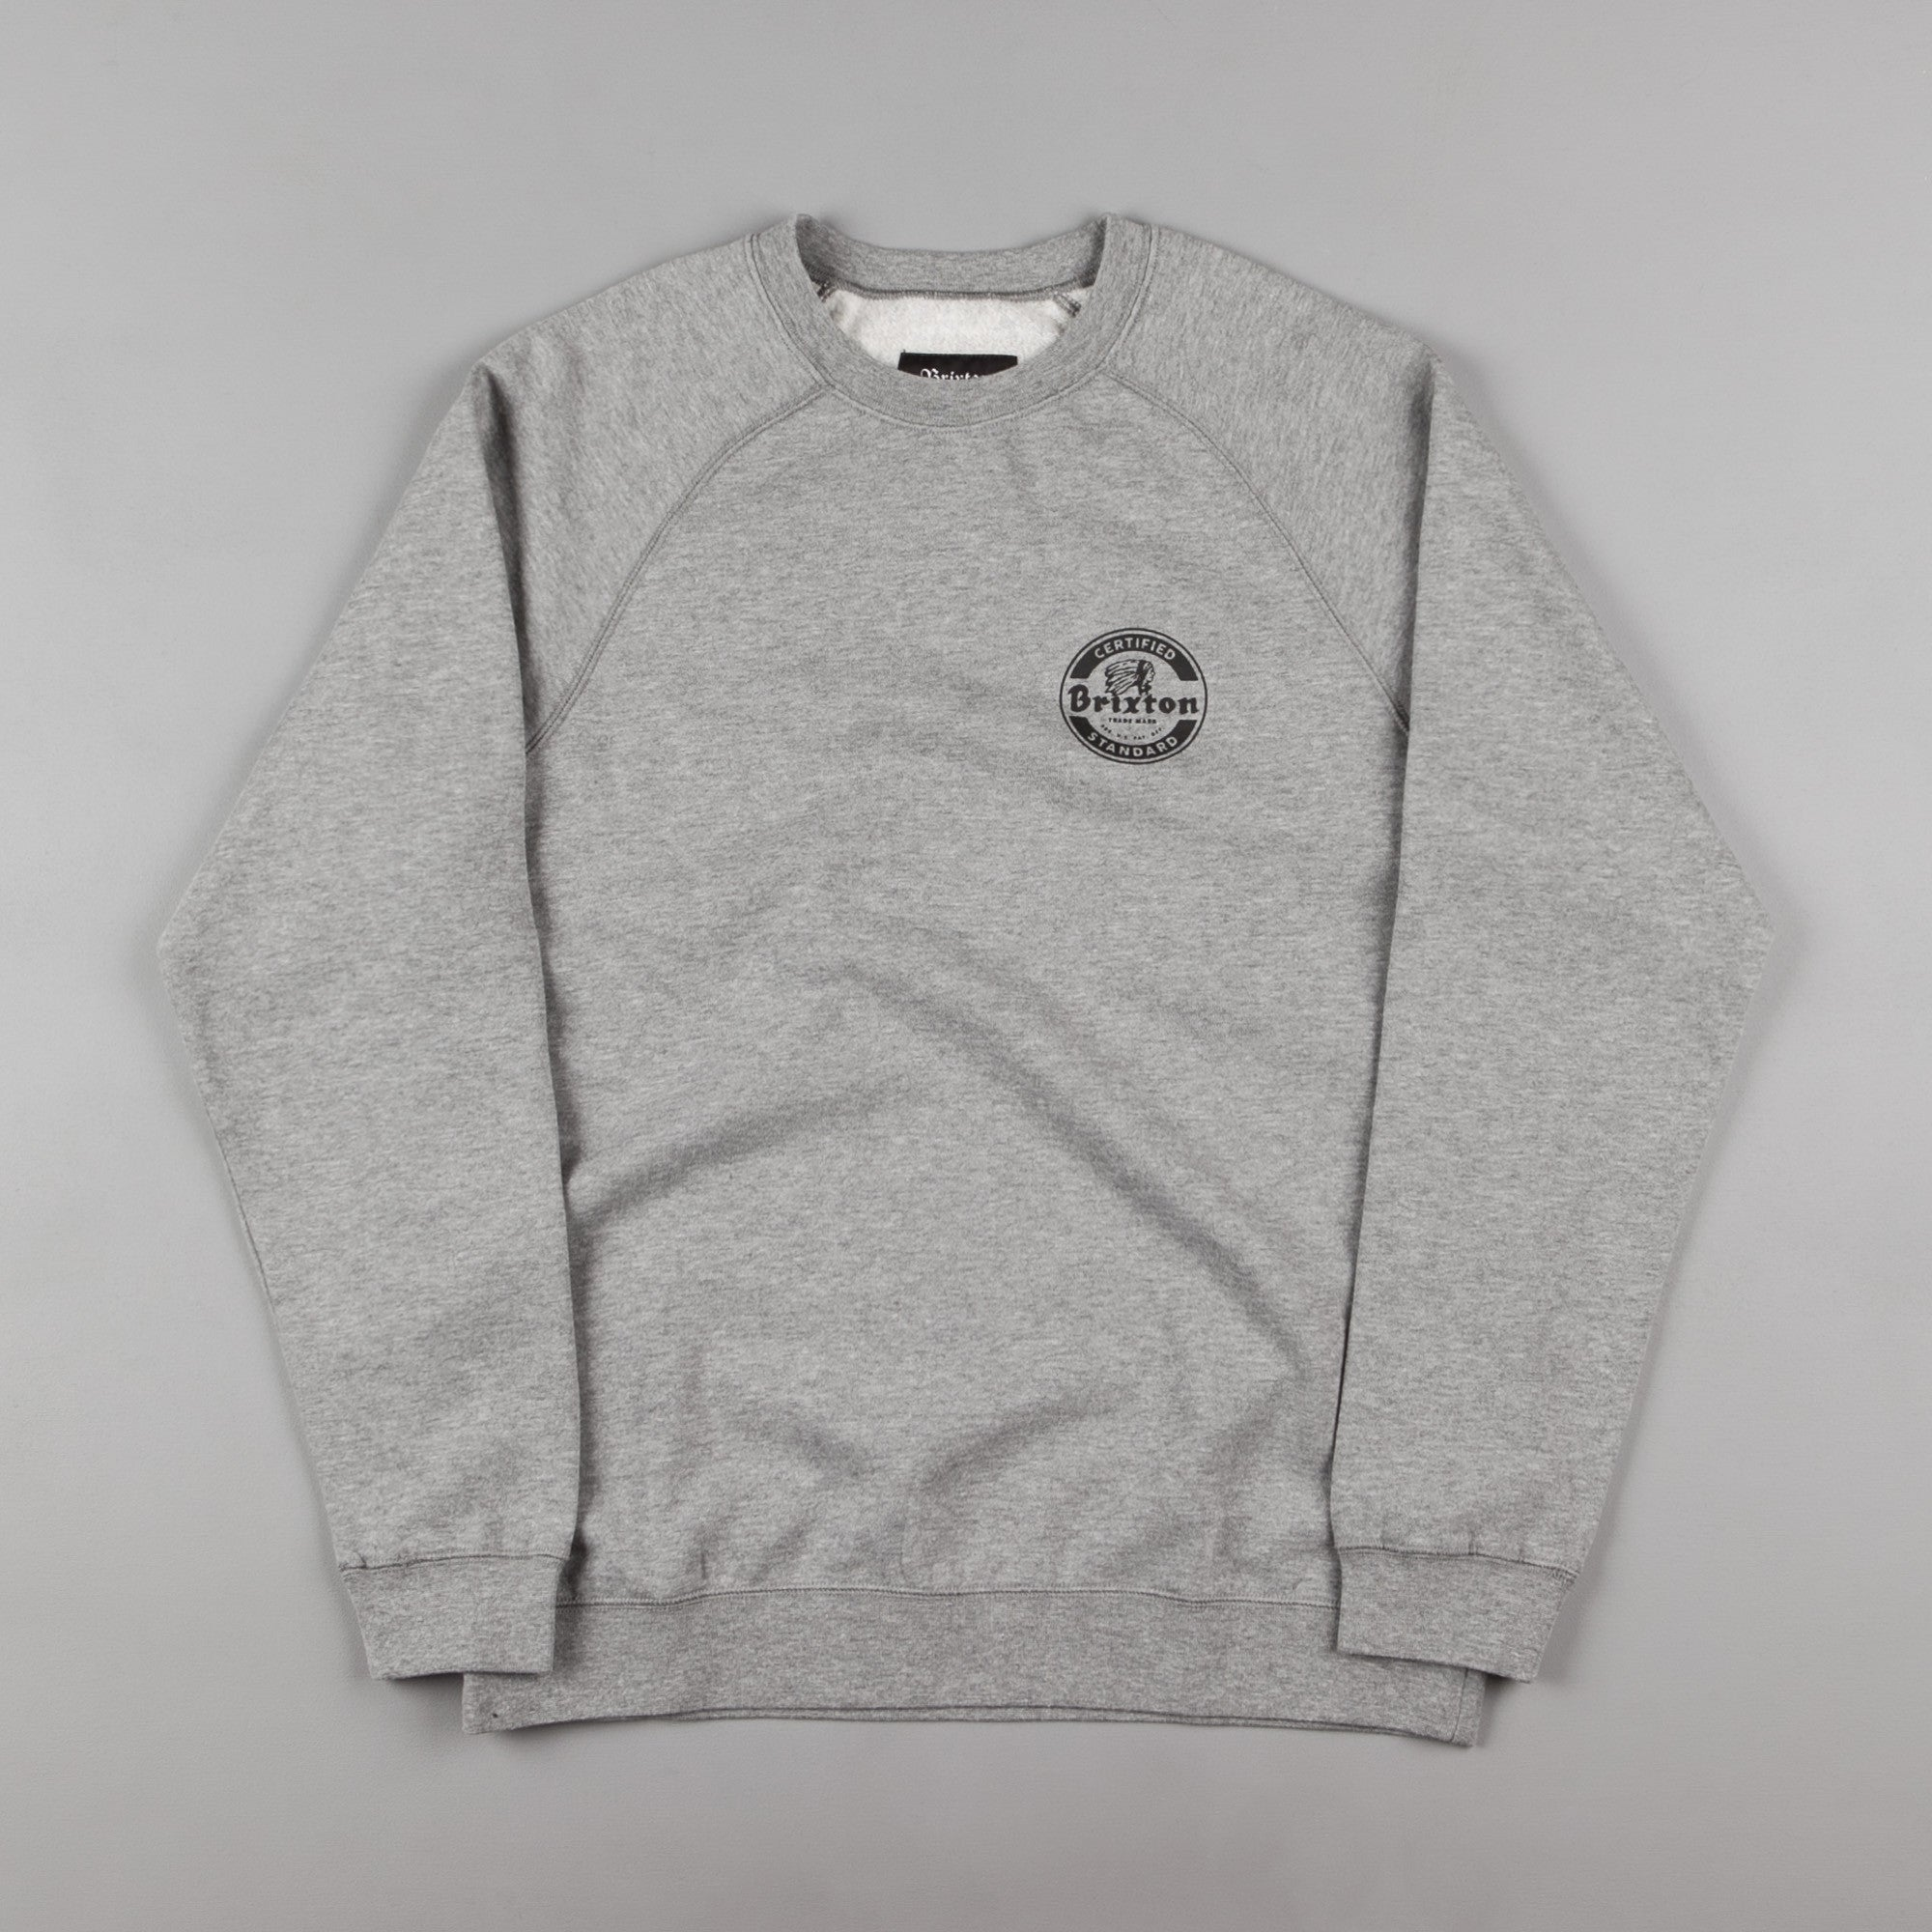 Brixton Soto Crewneck Sweatshirt - Heather Grey / Black